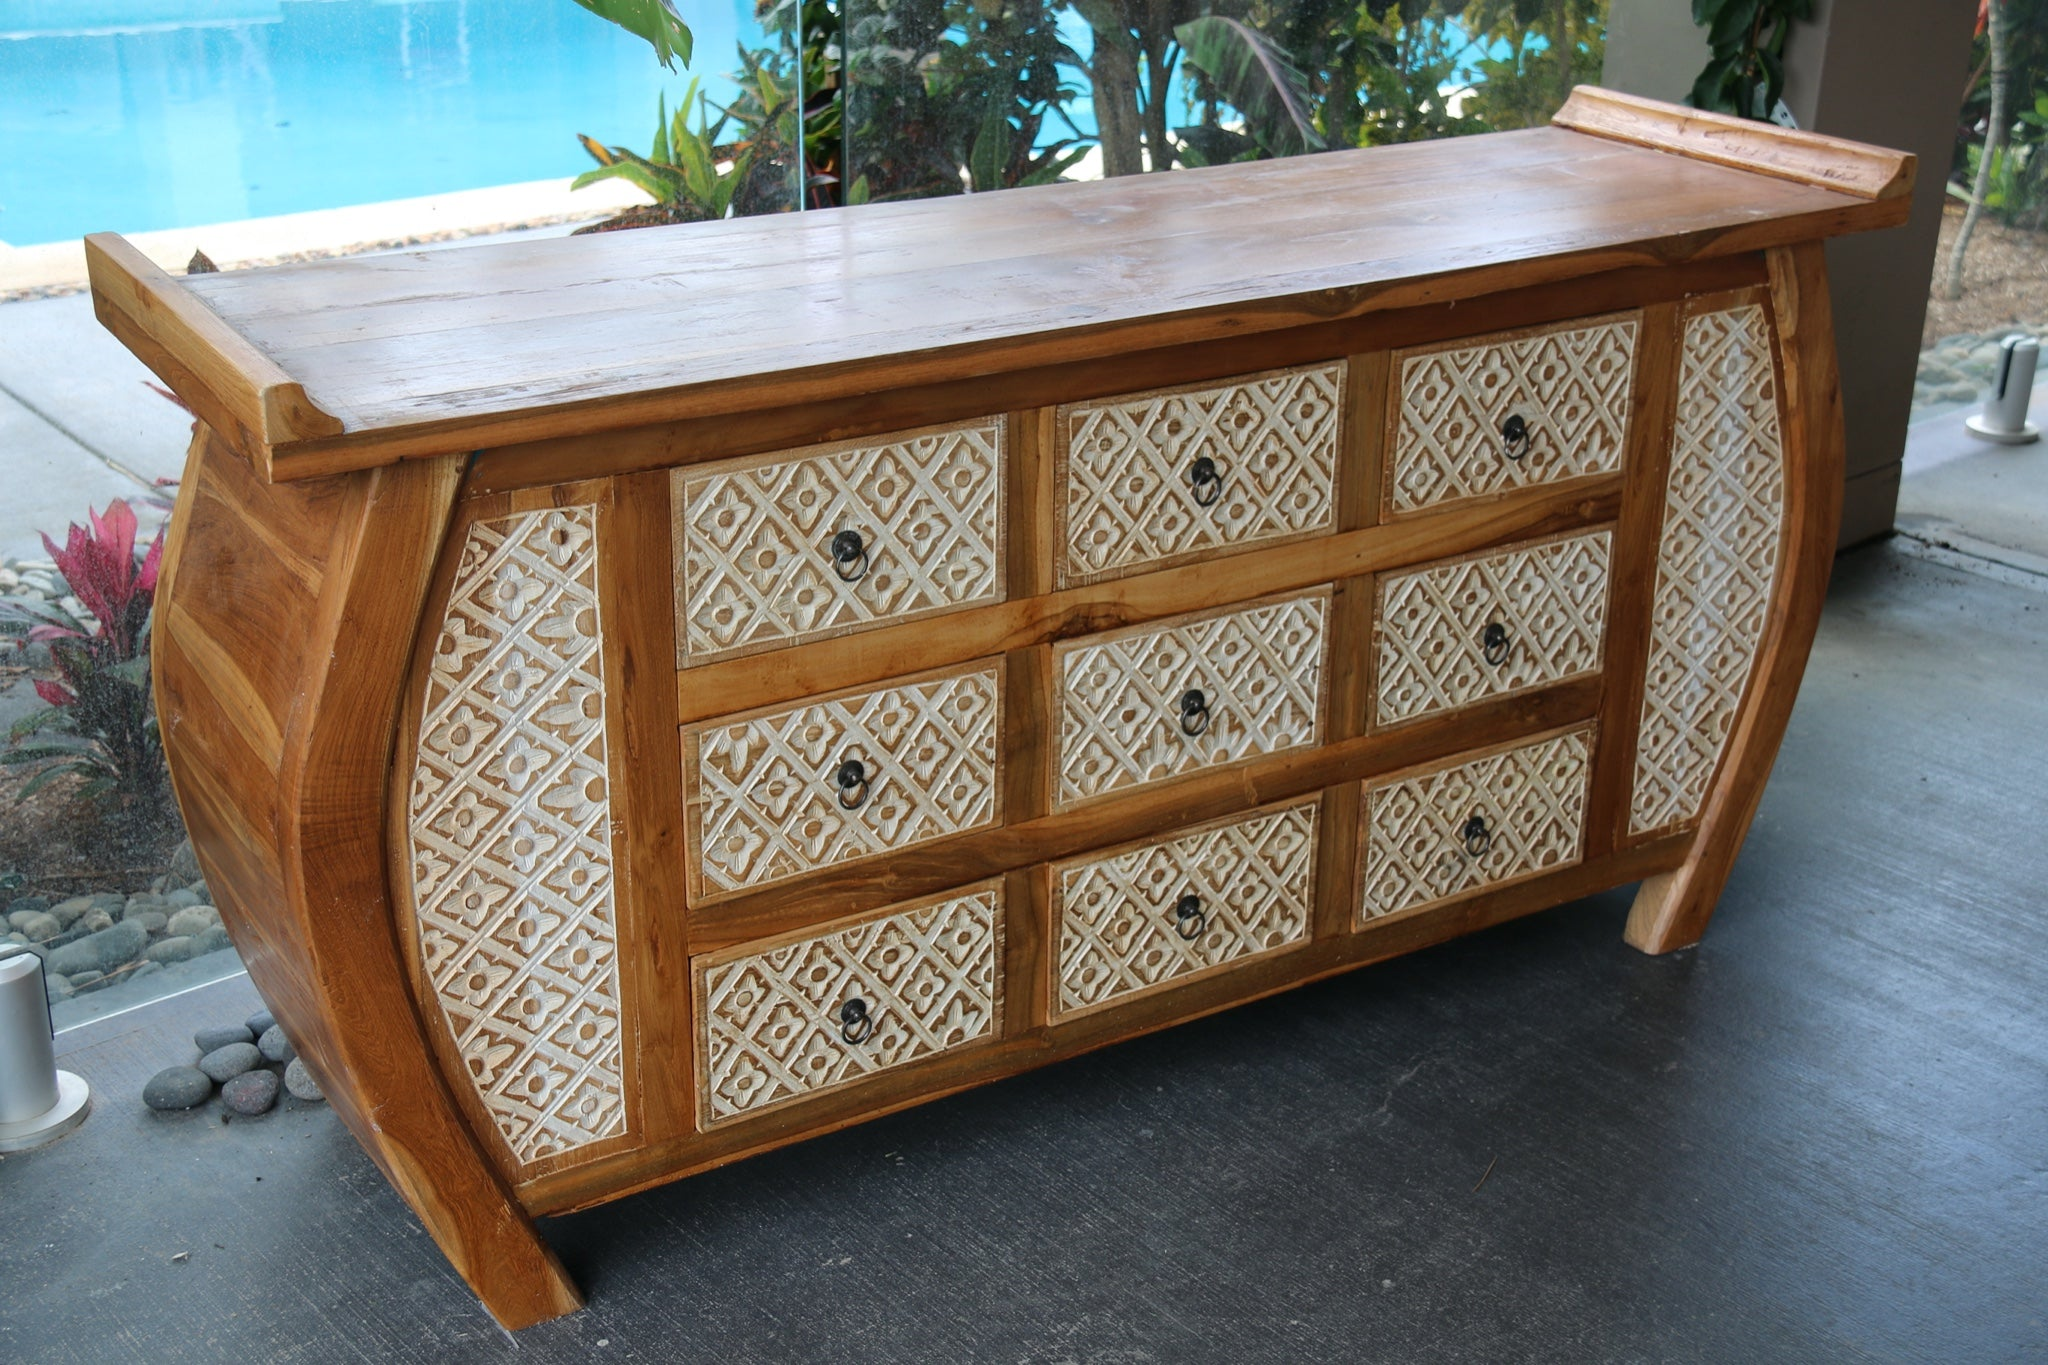 NEW BEAUTIFULLY HAND CARVED & CRAFTED TEAK WOOD BALINESE SIDEBOARD/BUFFET UNIT